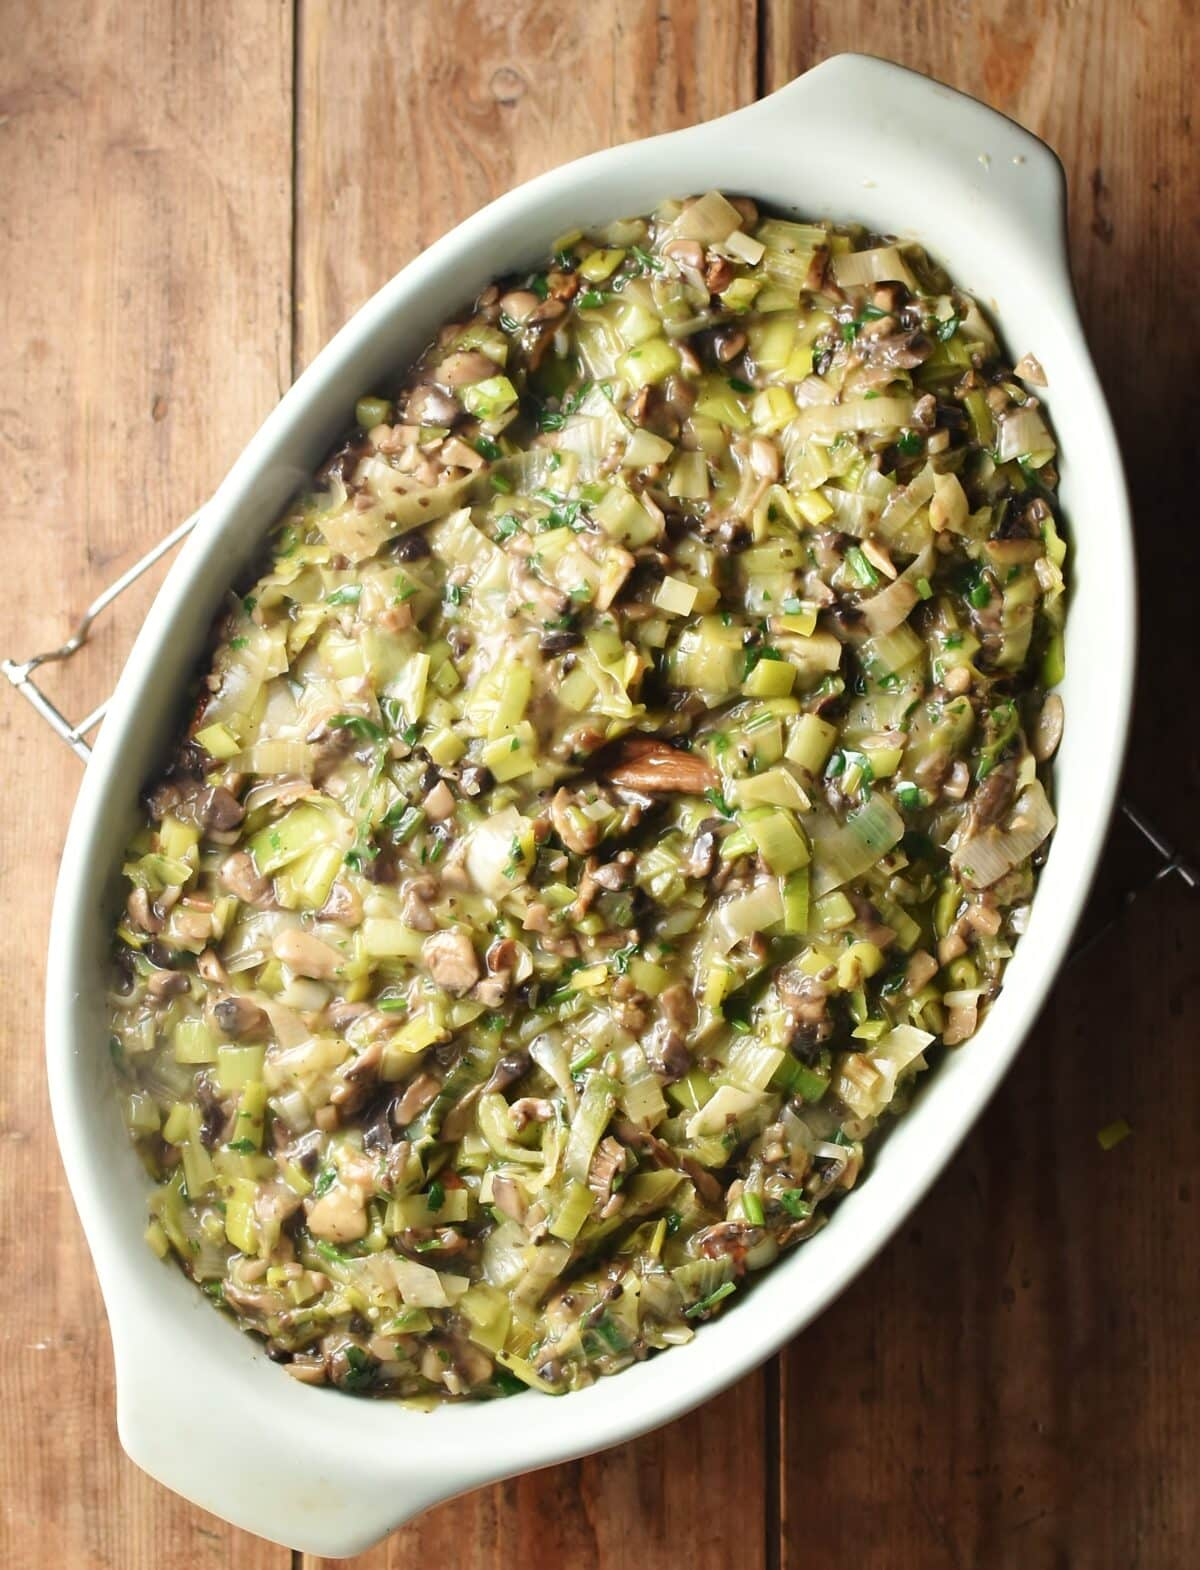 Creamy mushroom and leek mixture in oval casserole dish.